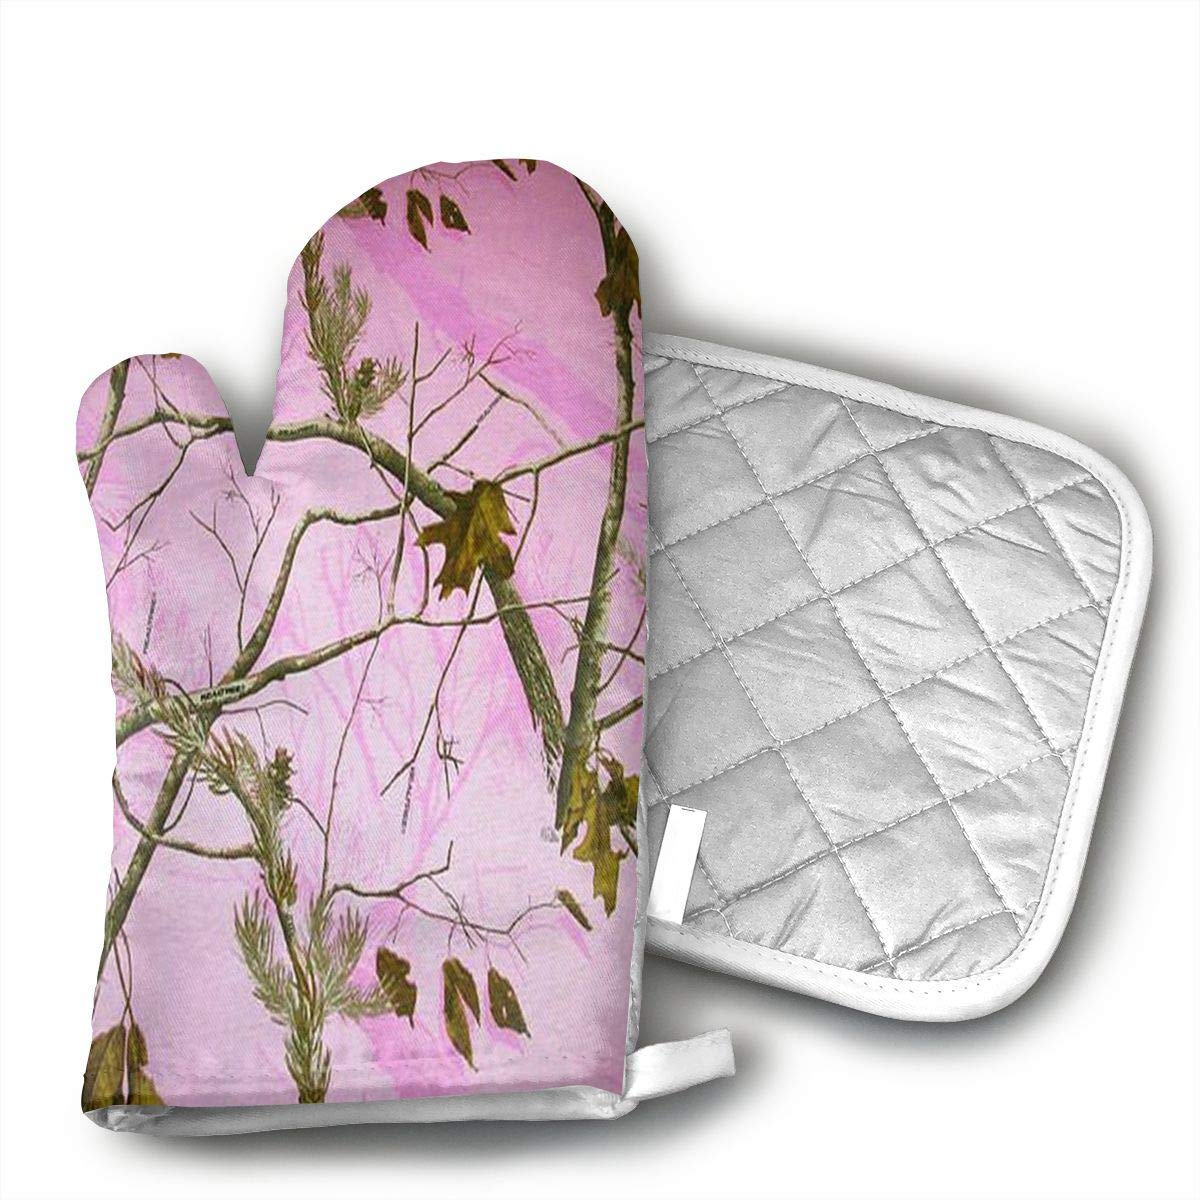 Klnsha7 Pink Realtree Camo Oven Hot Mitts Professional Heat Resistant Pot Holder & Baking Gloves